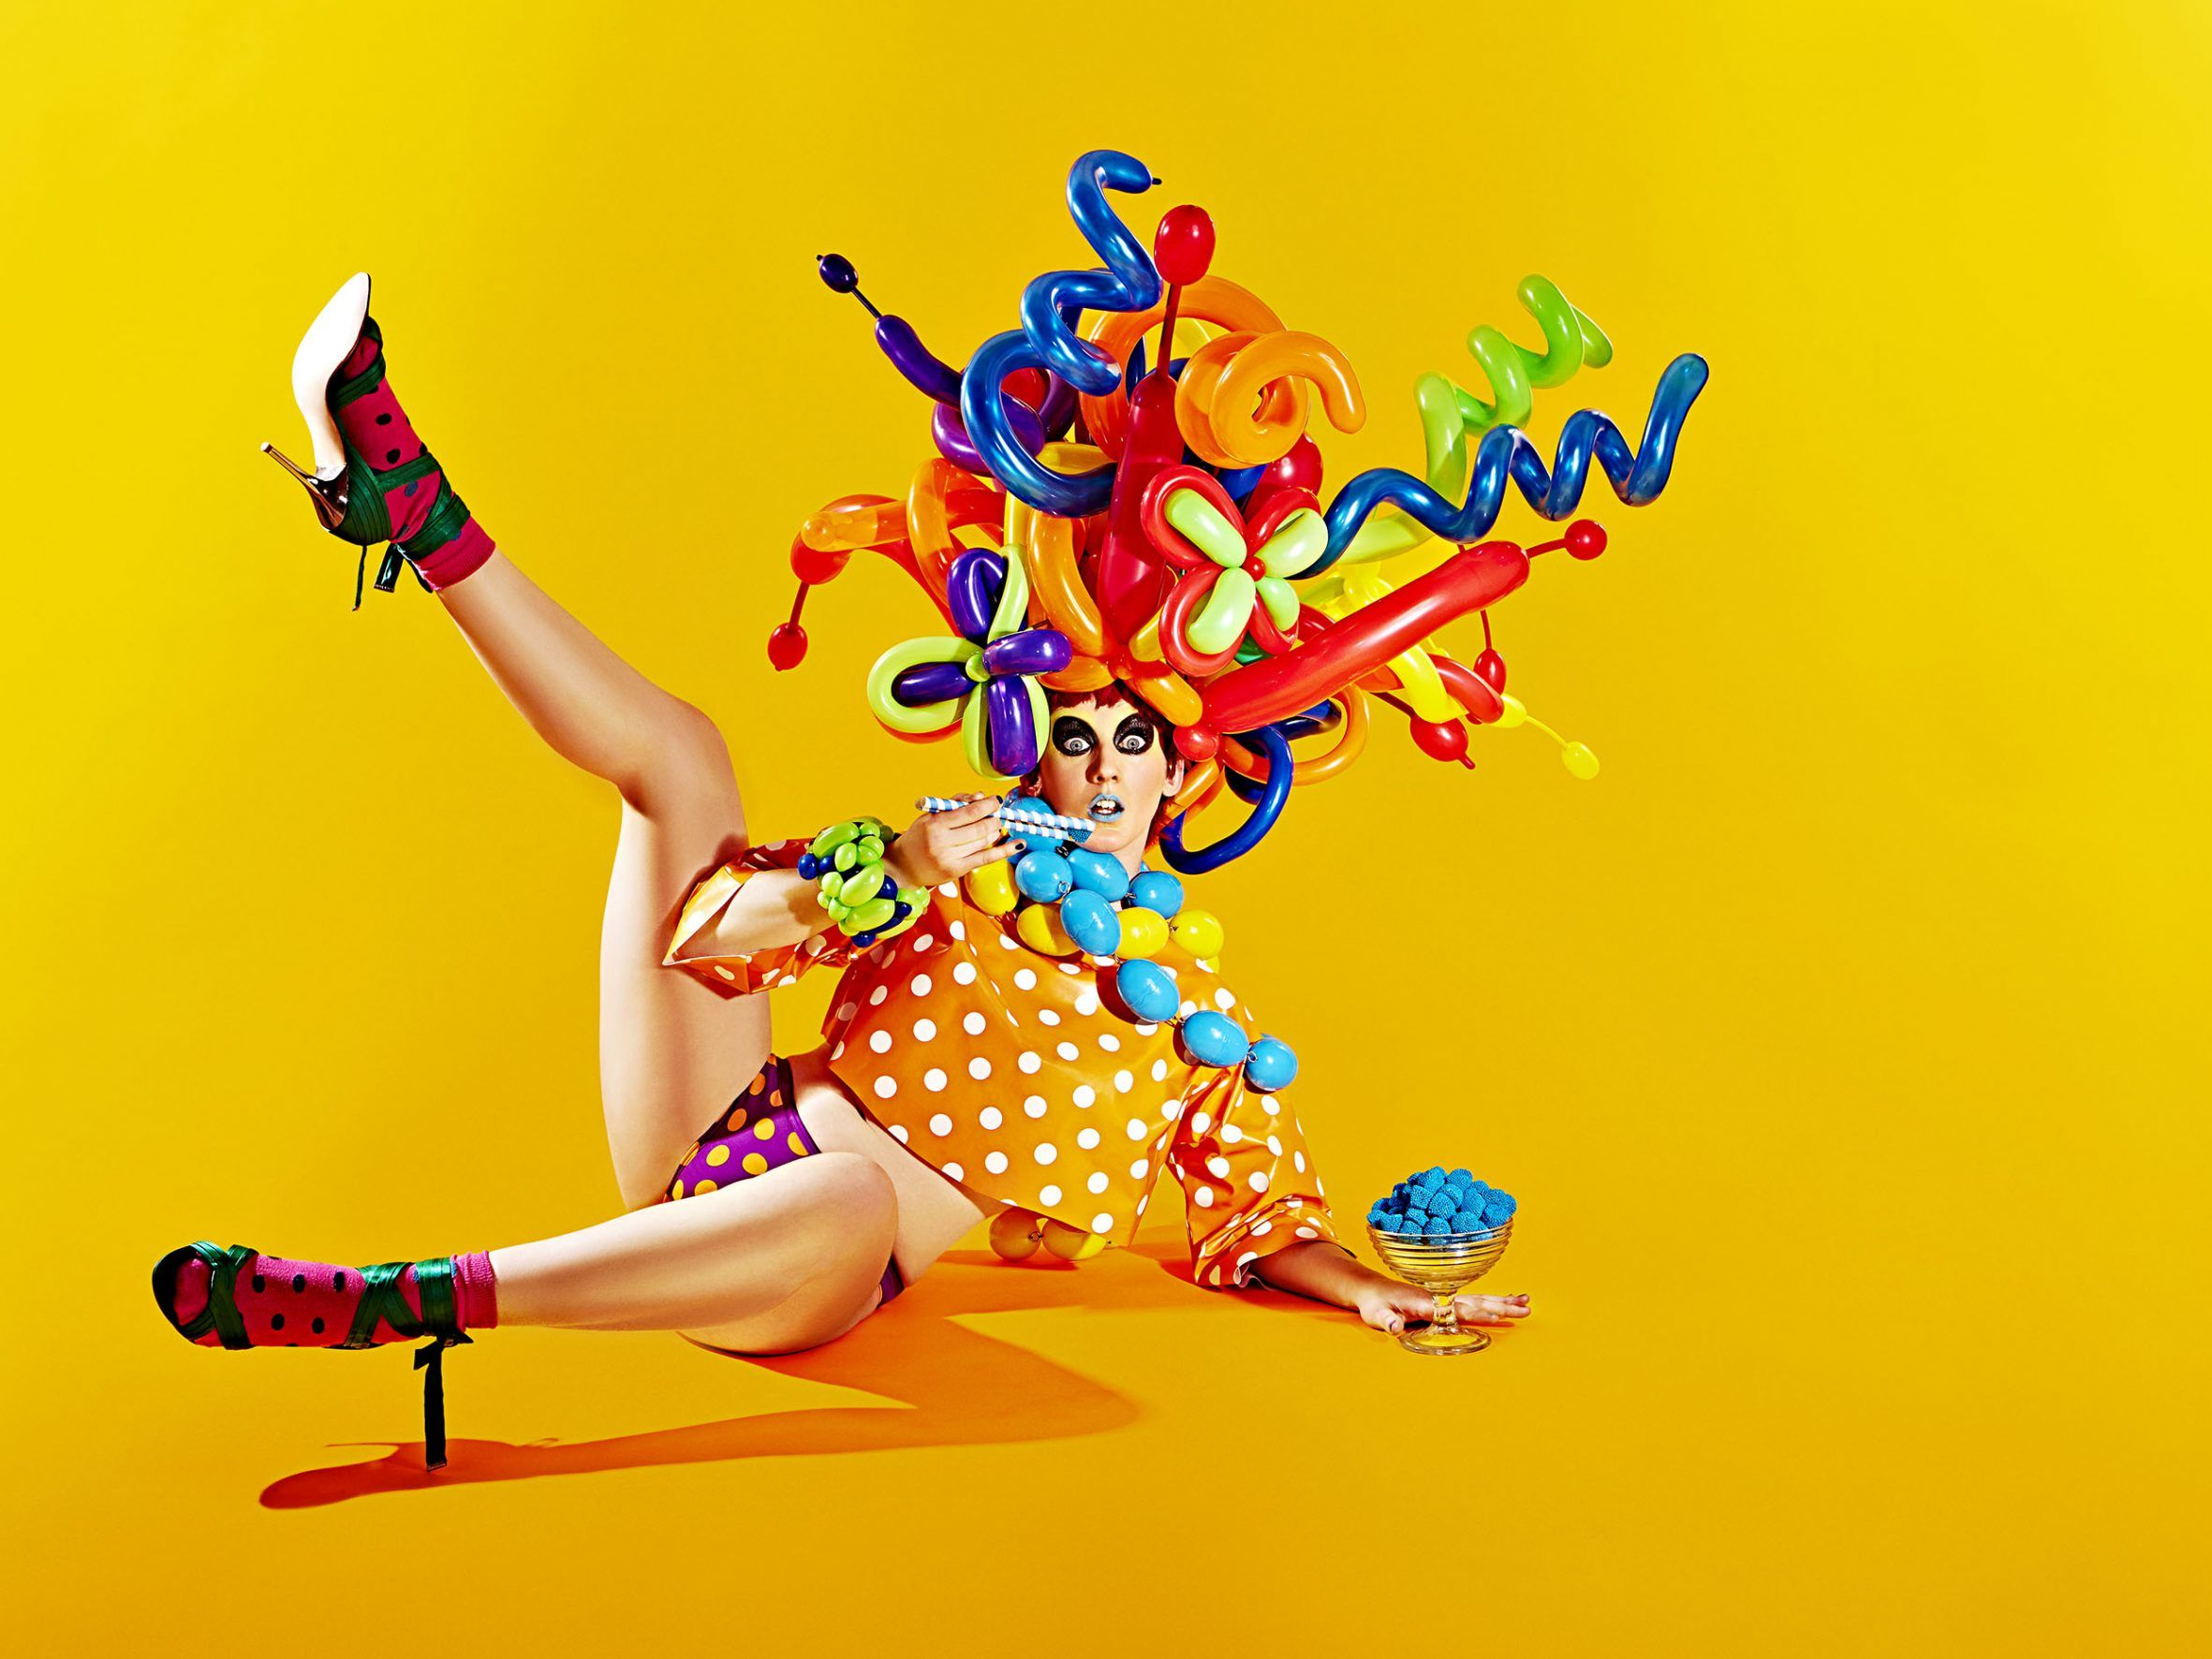 A fashion editorial featuring a woman wearing a variety of colours and shapes.